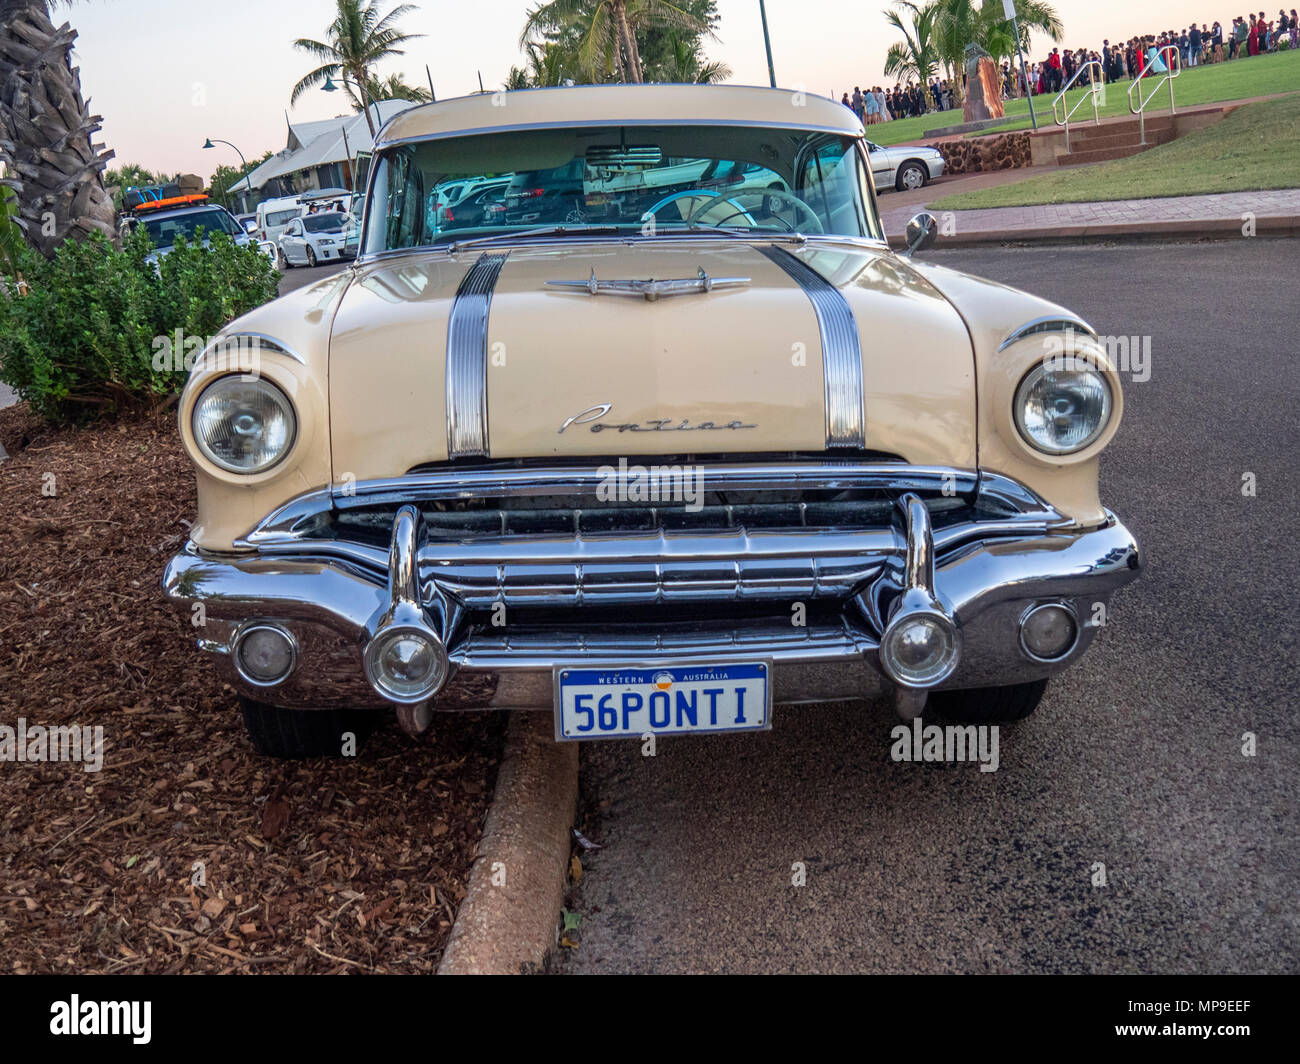 Pontiac Star Chief Stock Photos Images 1950 A 2 Door Car Parked On The Road In Cable Beach Broome